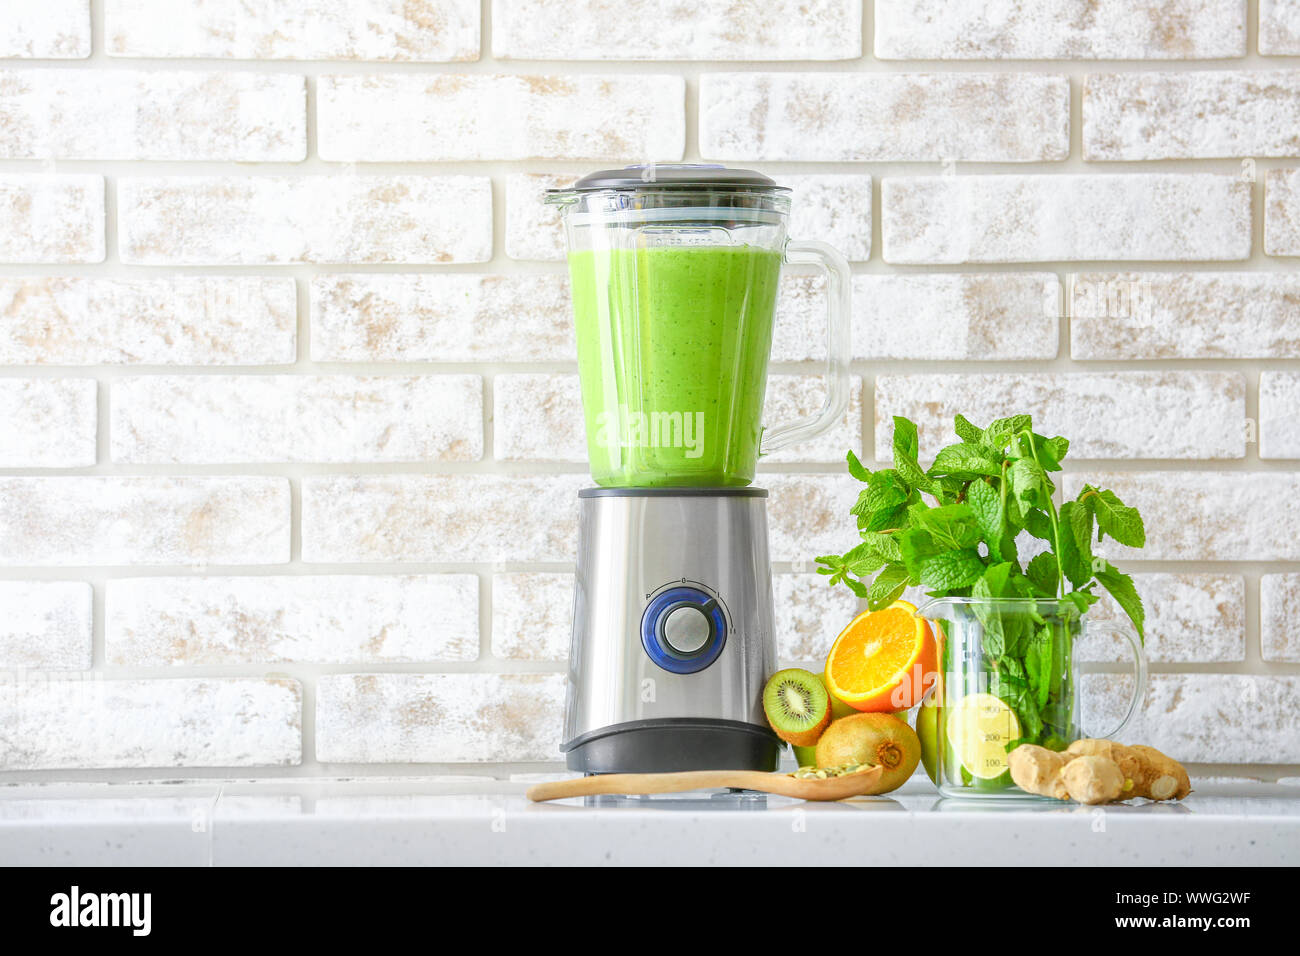 Blender with healthy smoothie and ingredients on table in kitchen Stock Photo